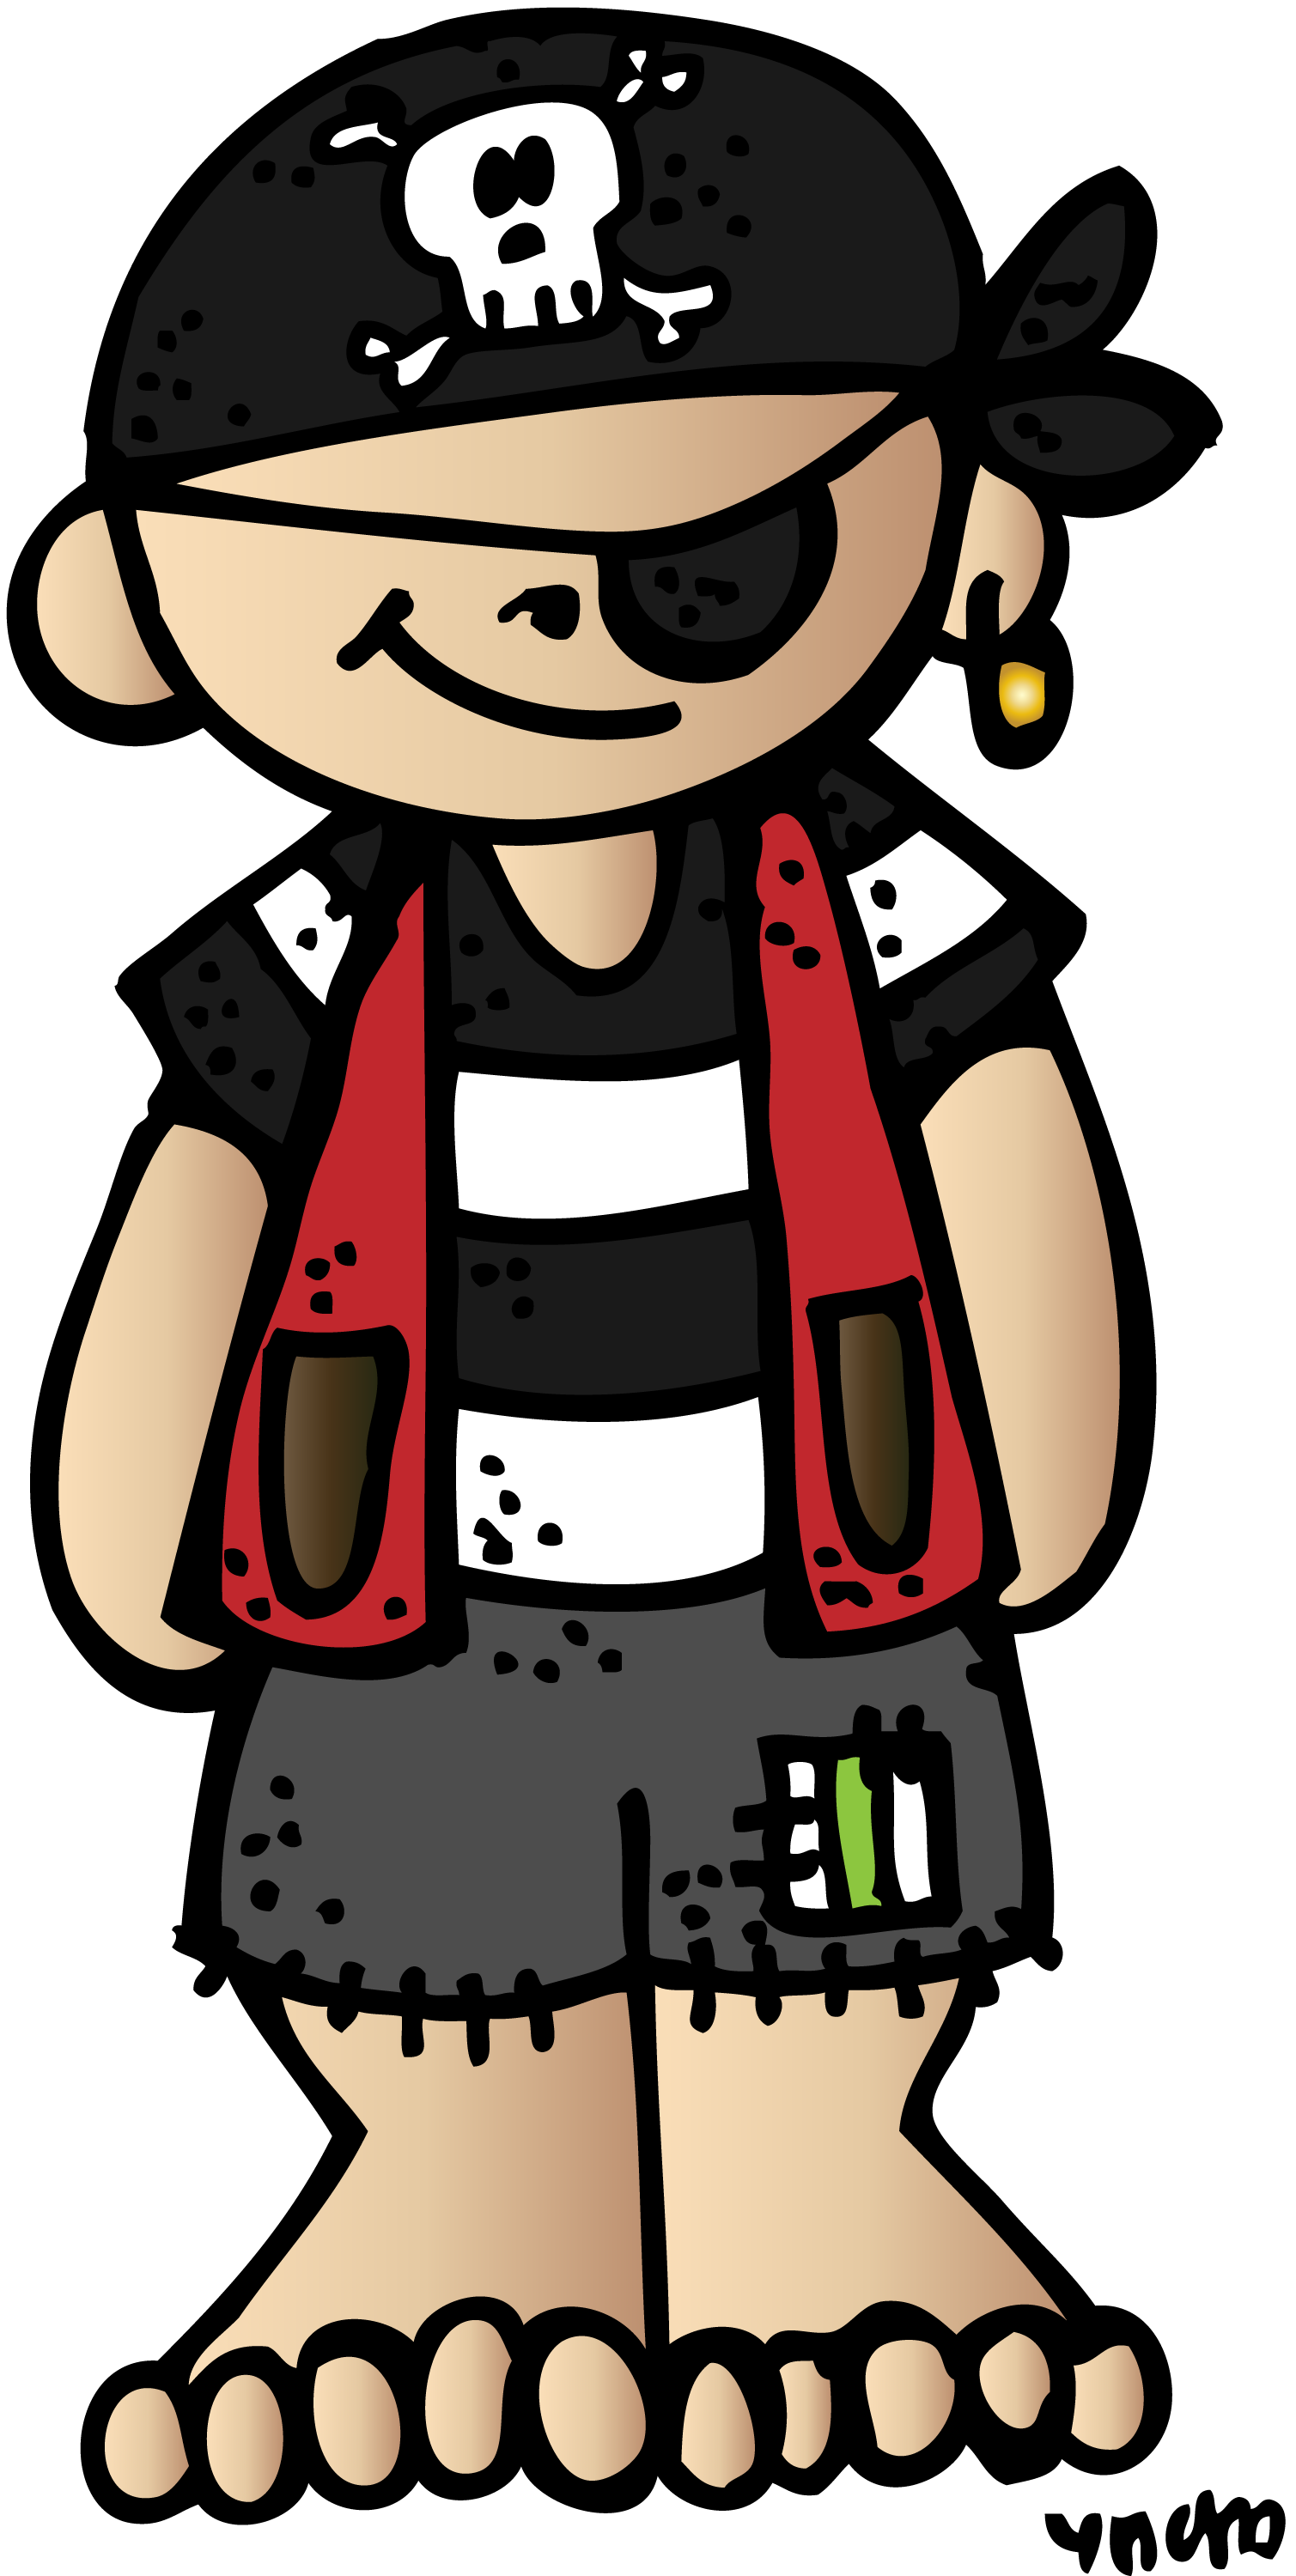 Cute halloween pirate clipart. Melonheadz freebies google mu